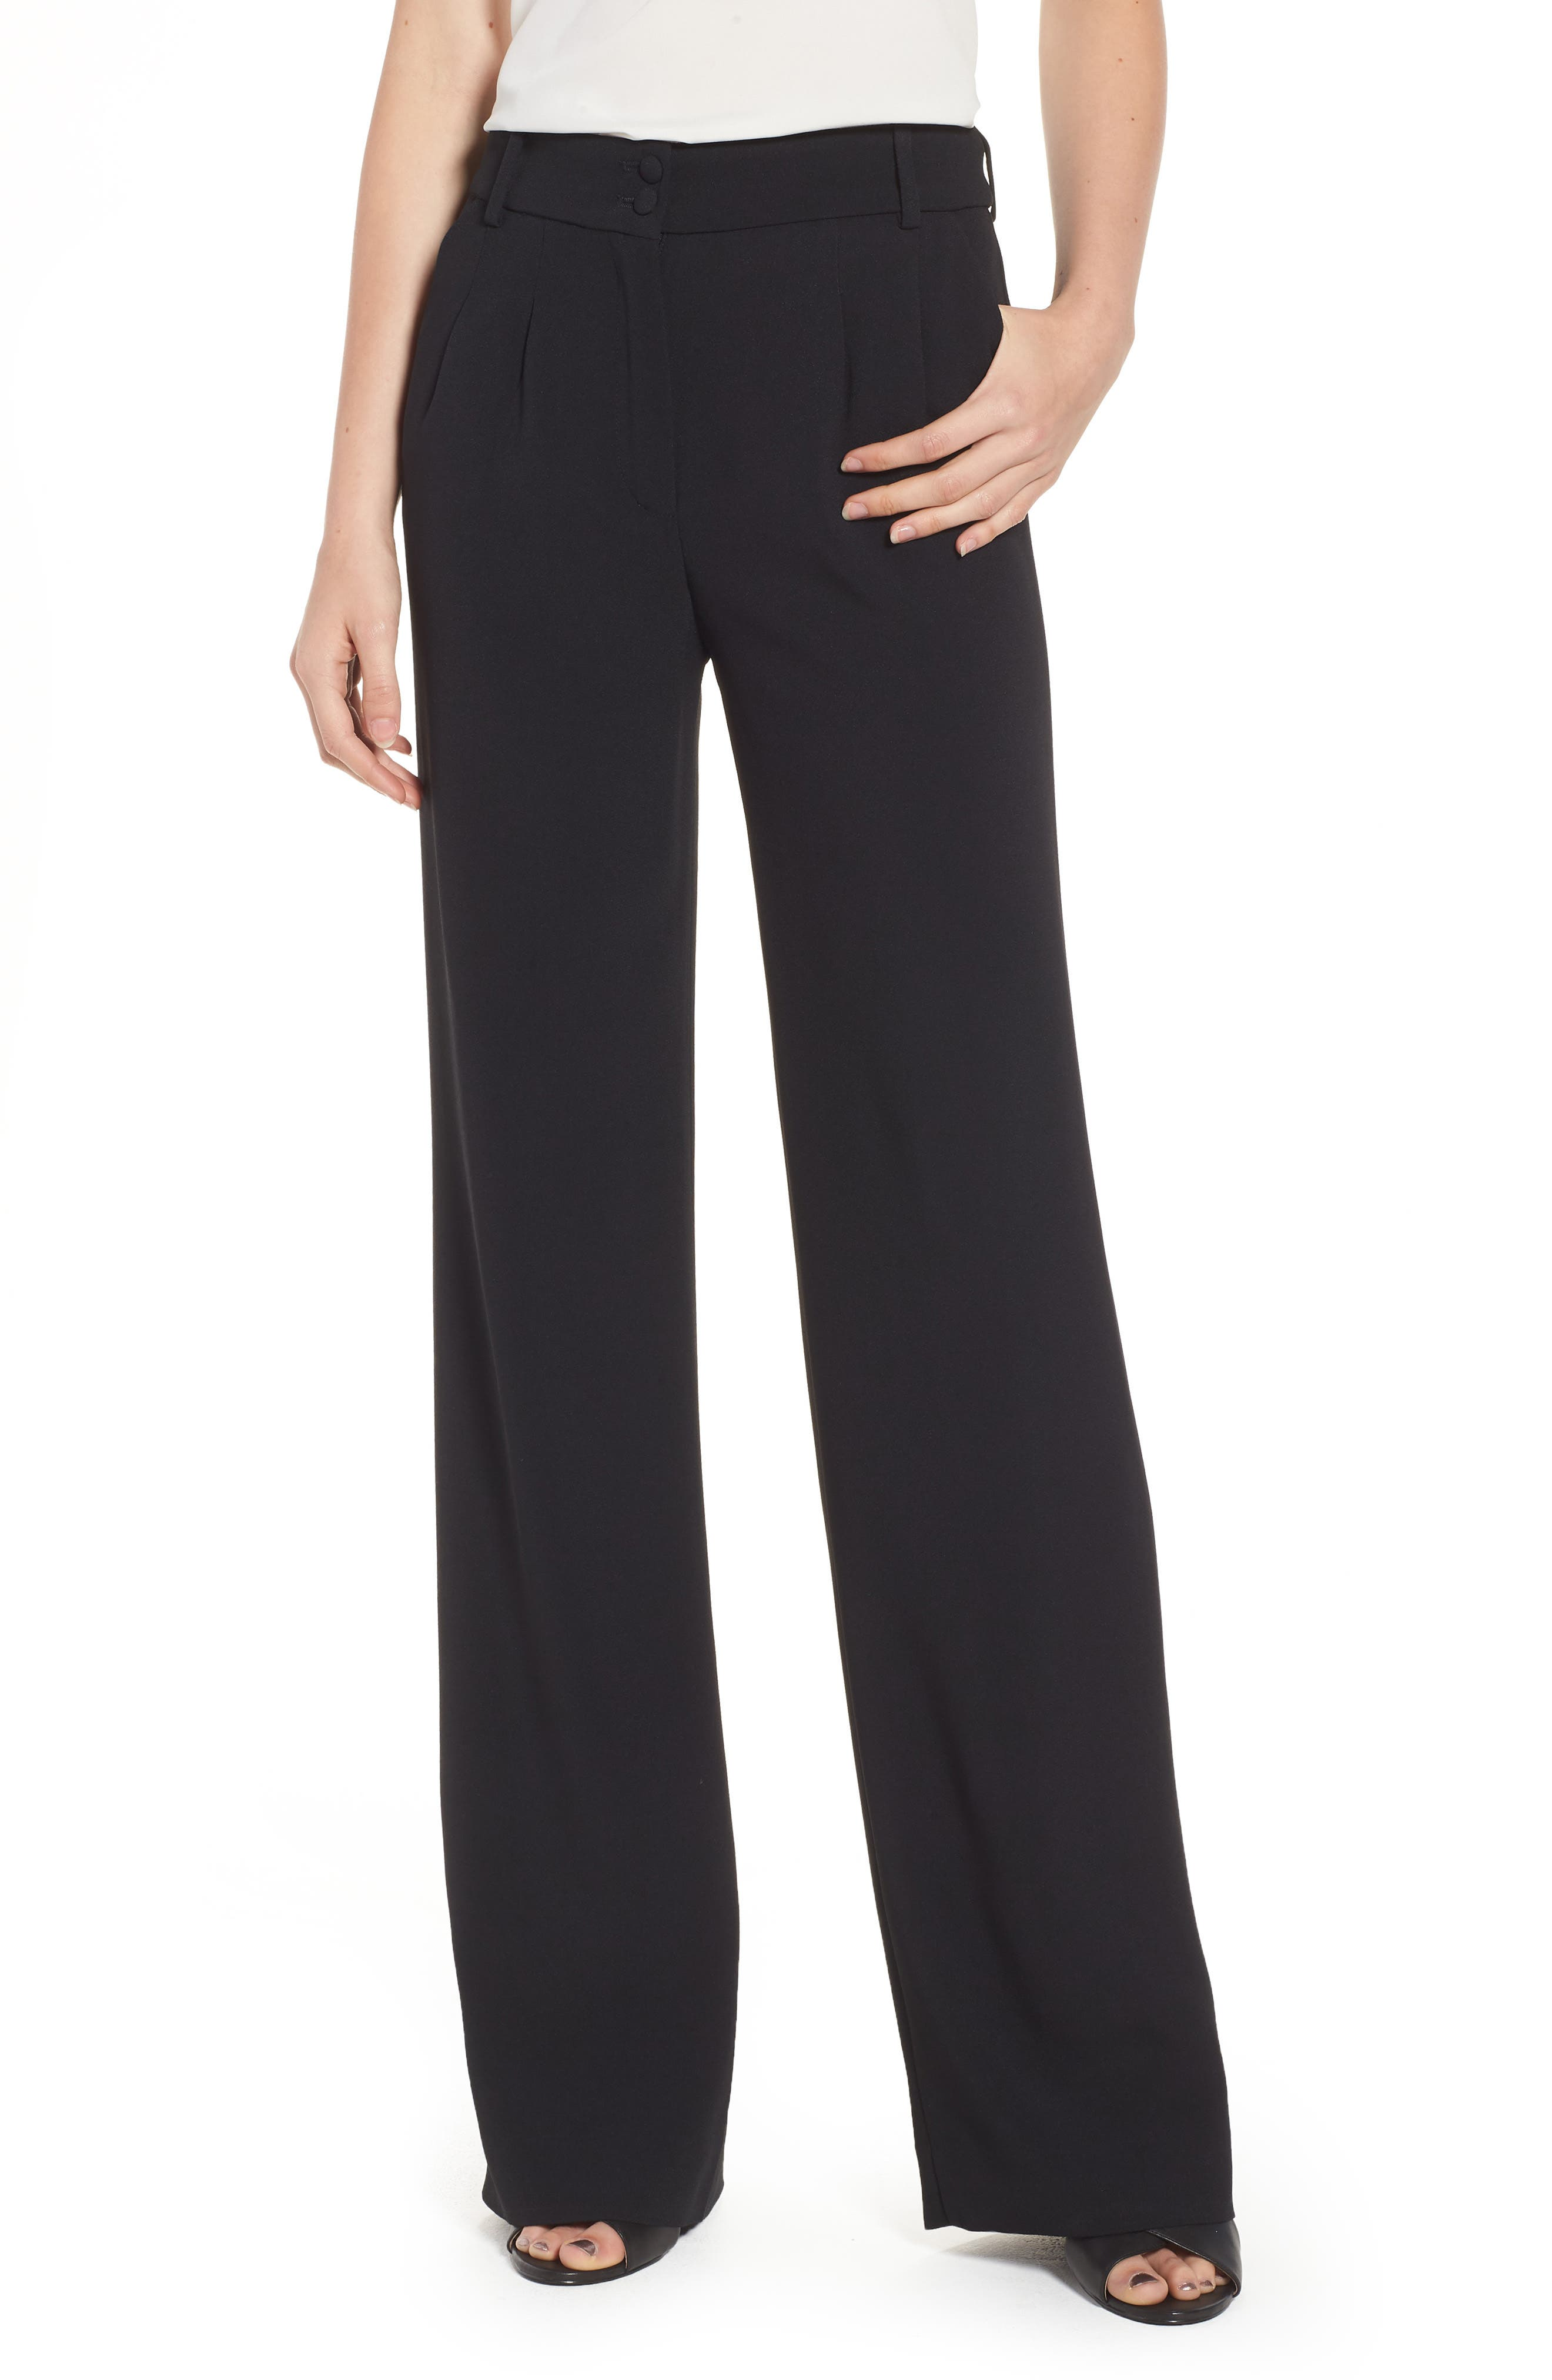 Théofil Silk Trousers,                             Main thumbnail 1, color,                             001